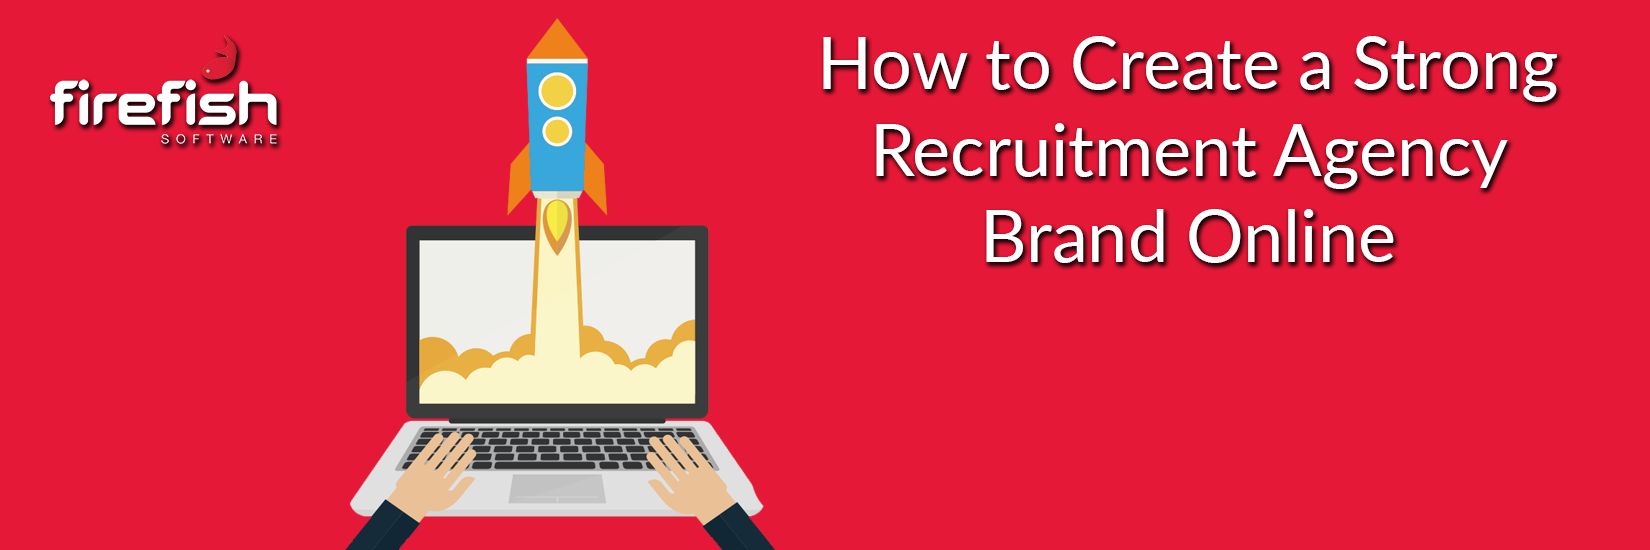 How to Create a Strong Recruitment Agency Brand Online